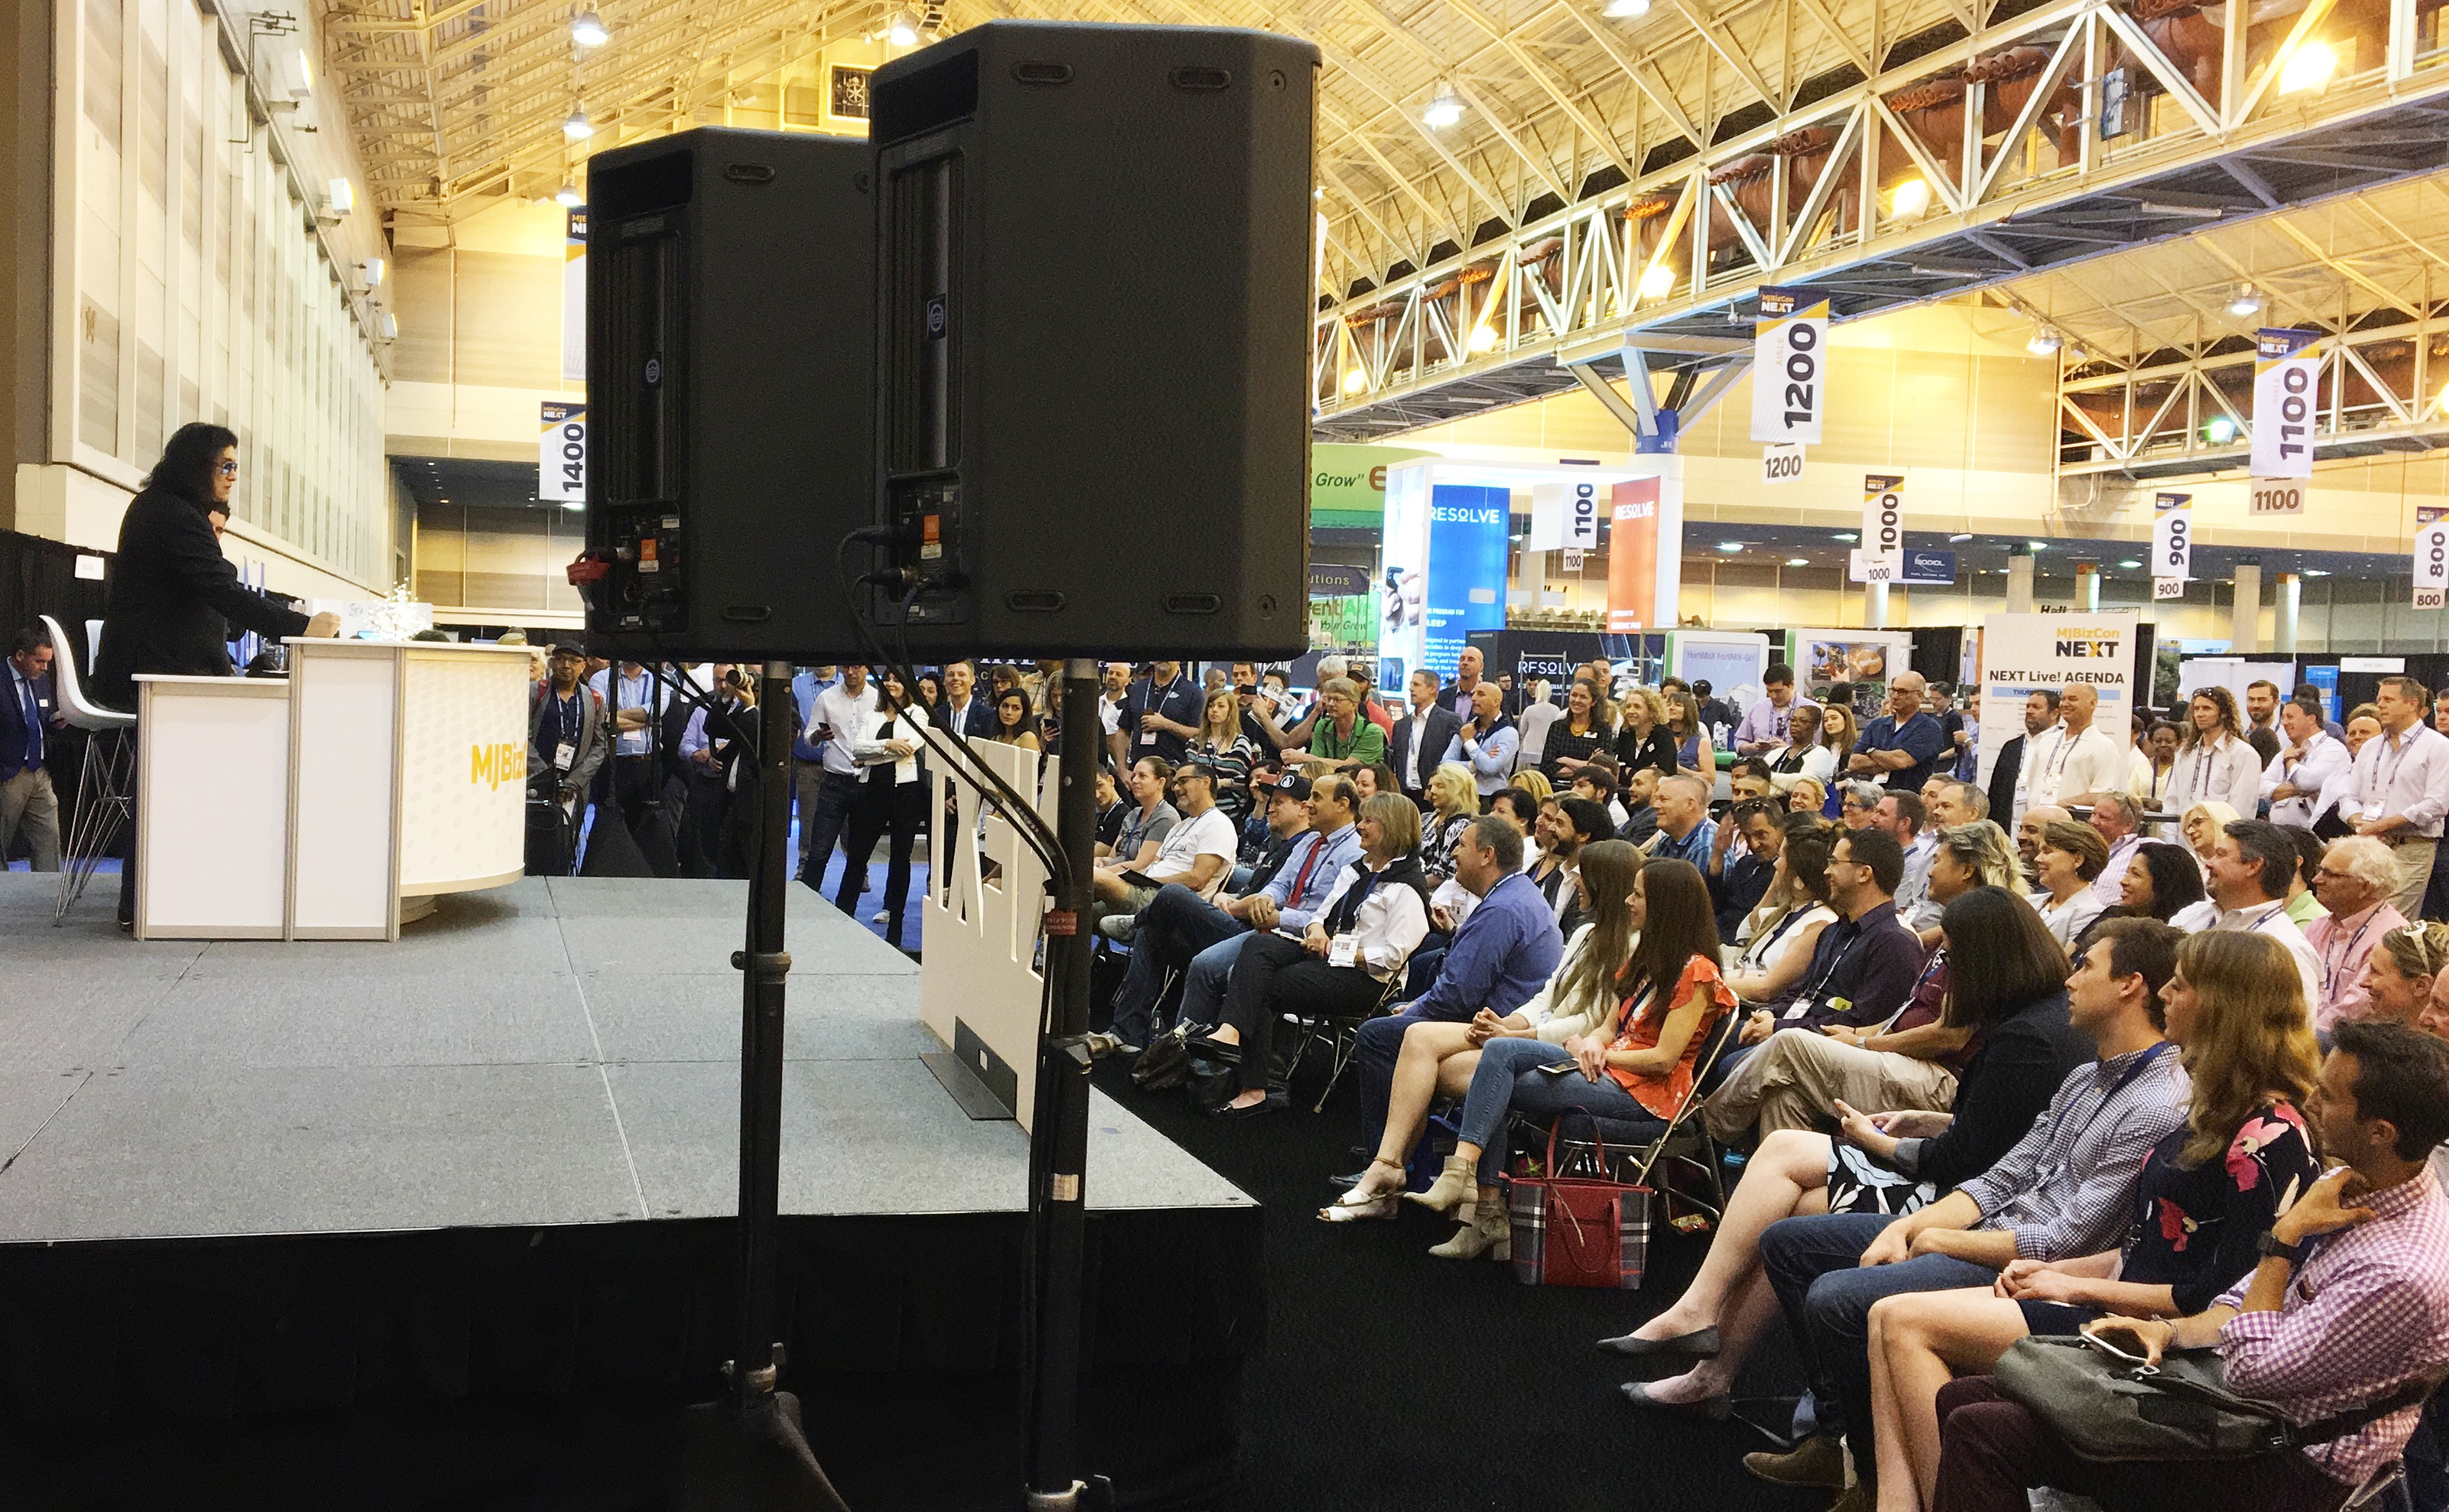 MJBizCon New Orleans Event Sets The Stage for East and West Leaders to Connect